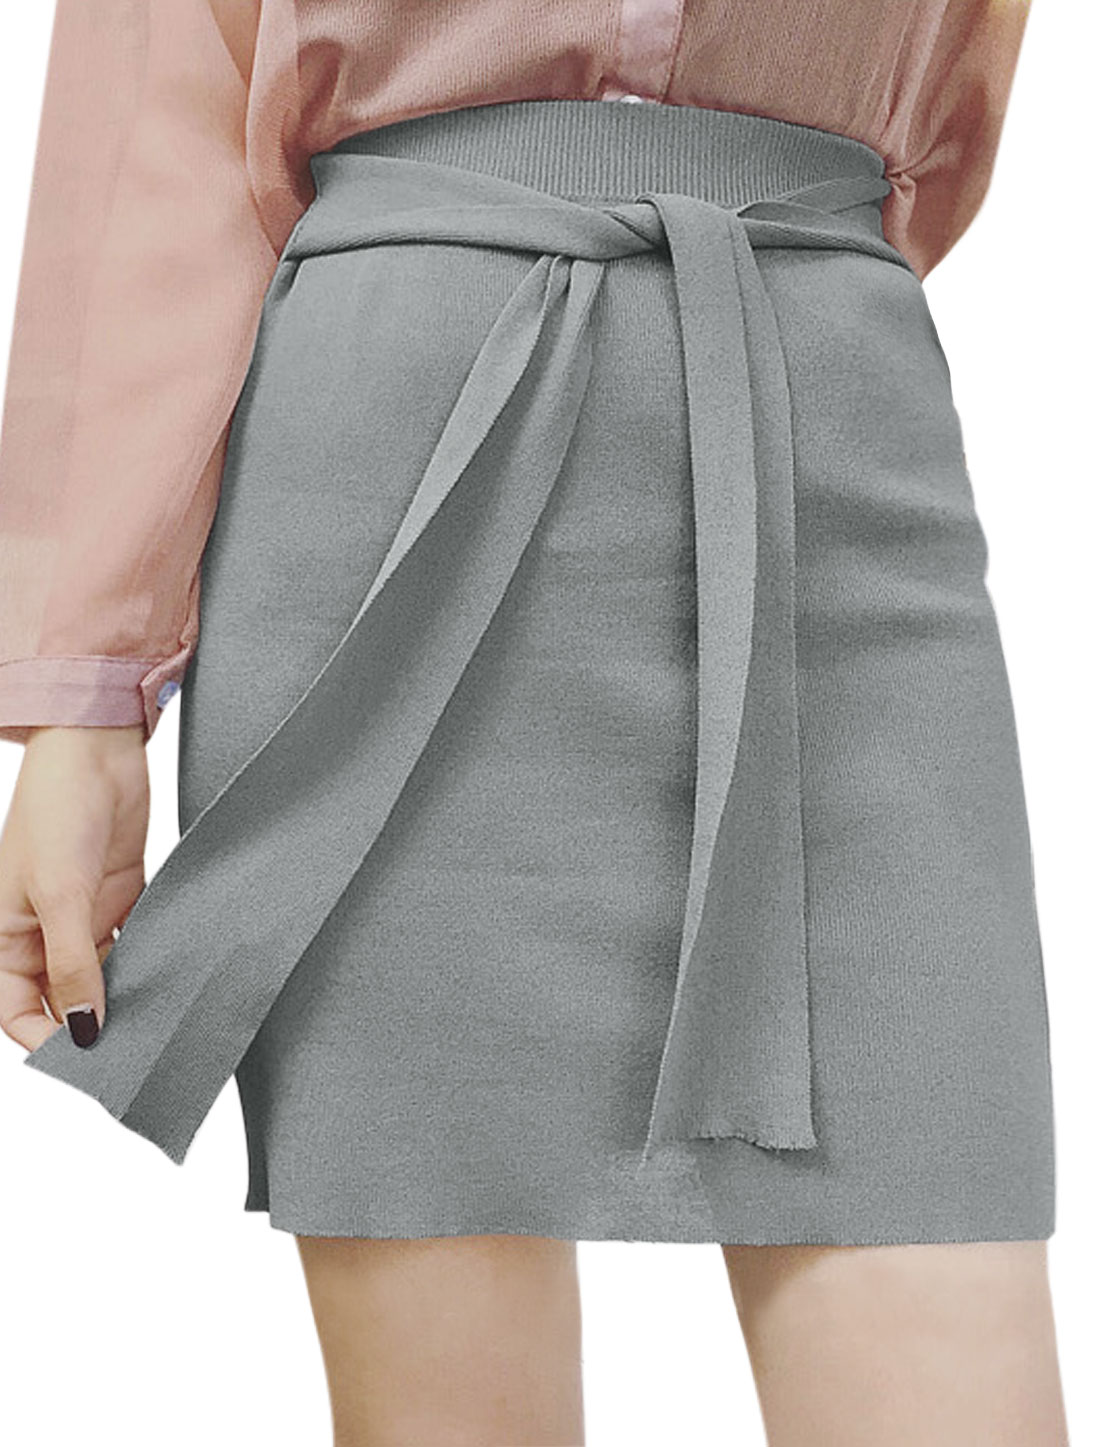 Women Self Tie Front High Waist Knitted Straight Skirt Gray XS